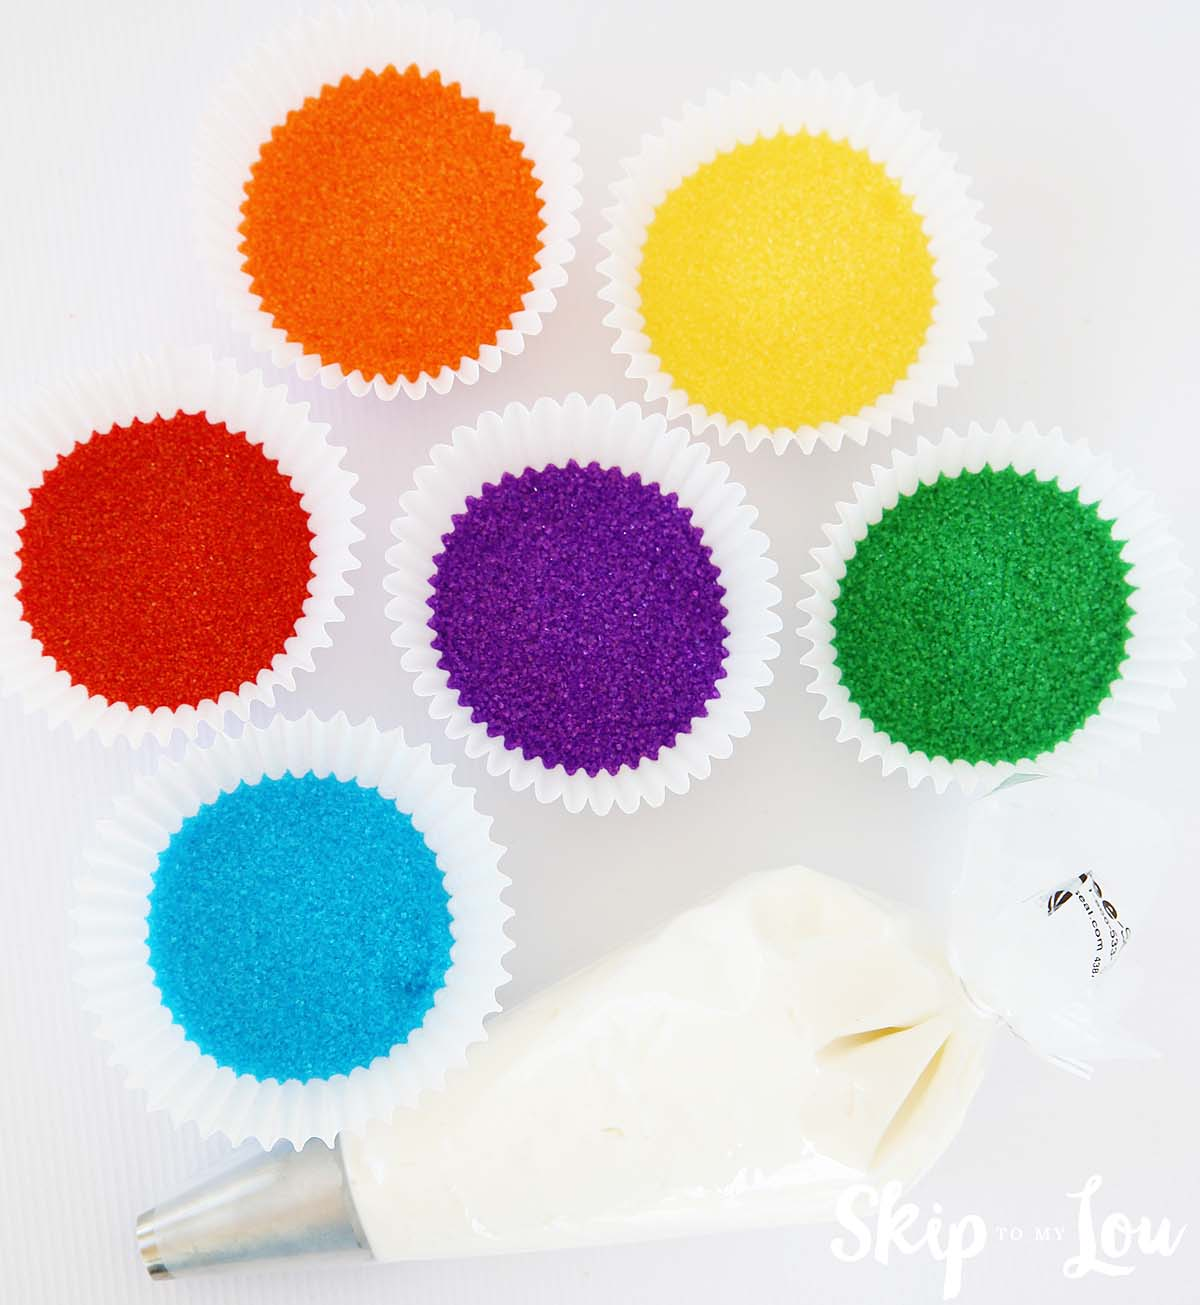 red, orange, yellow, blue, purple, and green sanding sugars in jumbo baking cups, and a piping bag with tip filled with white frosting